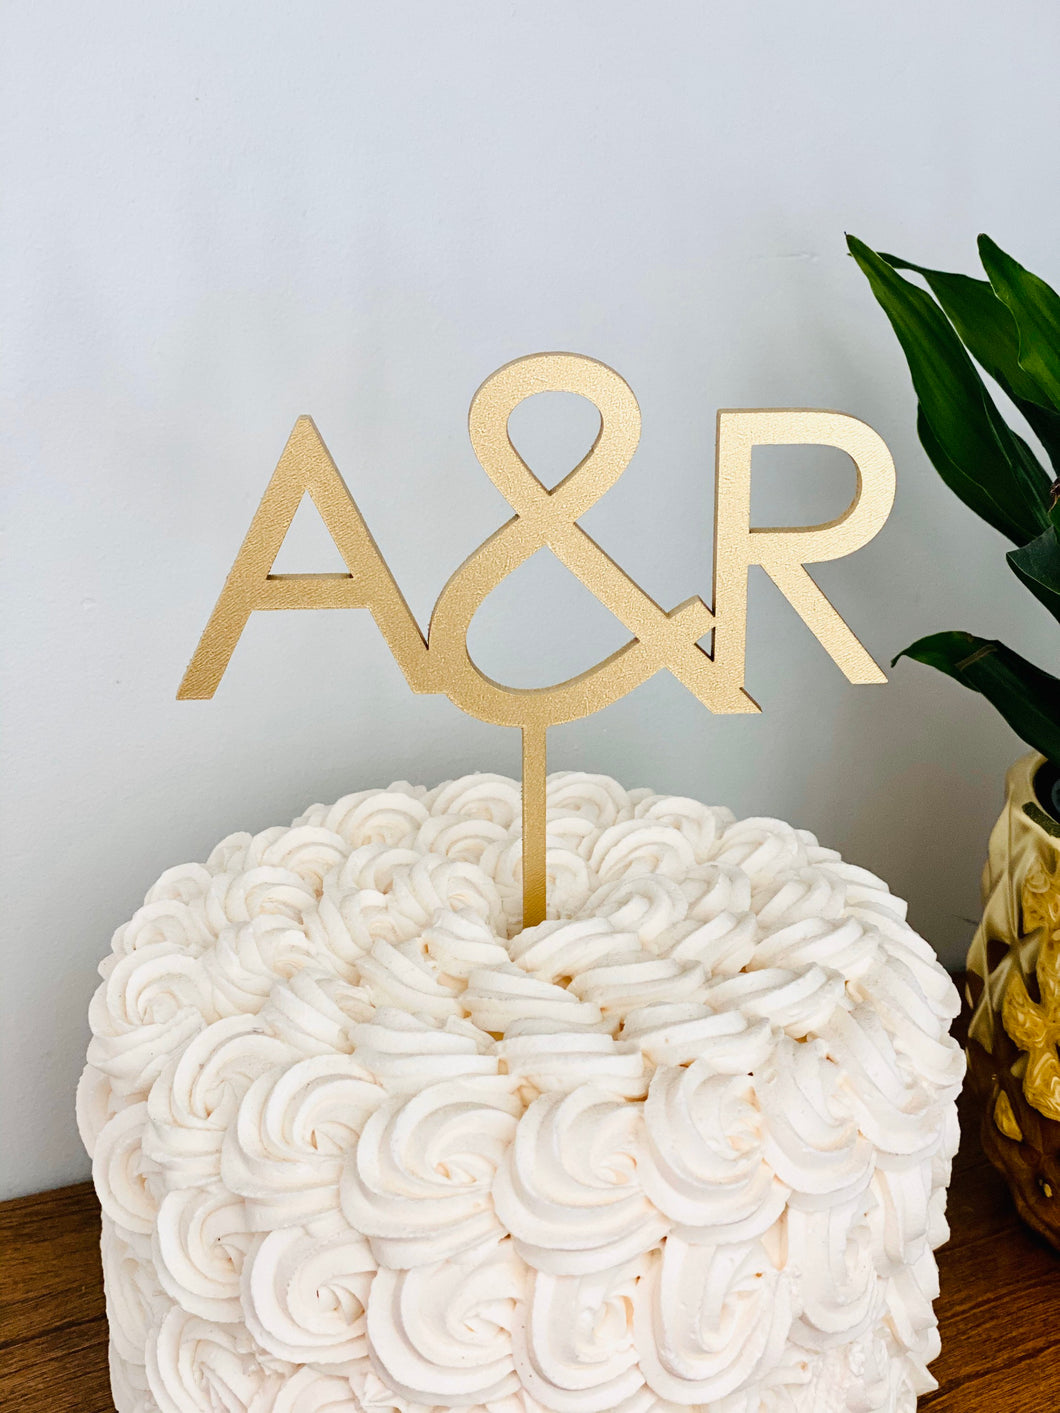 Personalized 2 Initials Cake Topper, 5